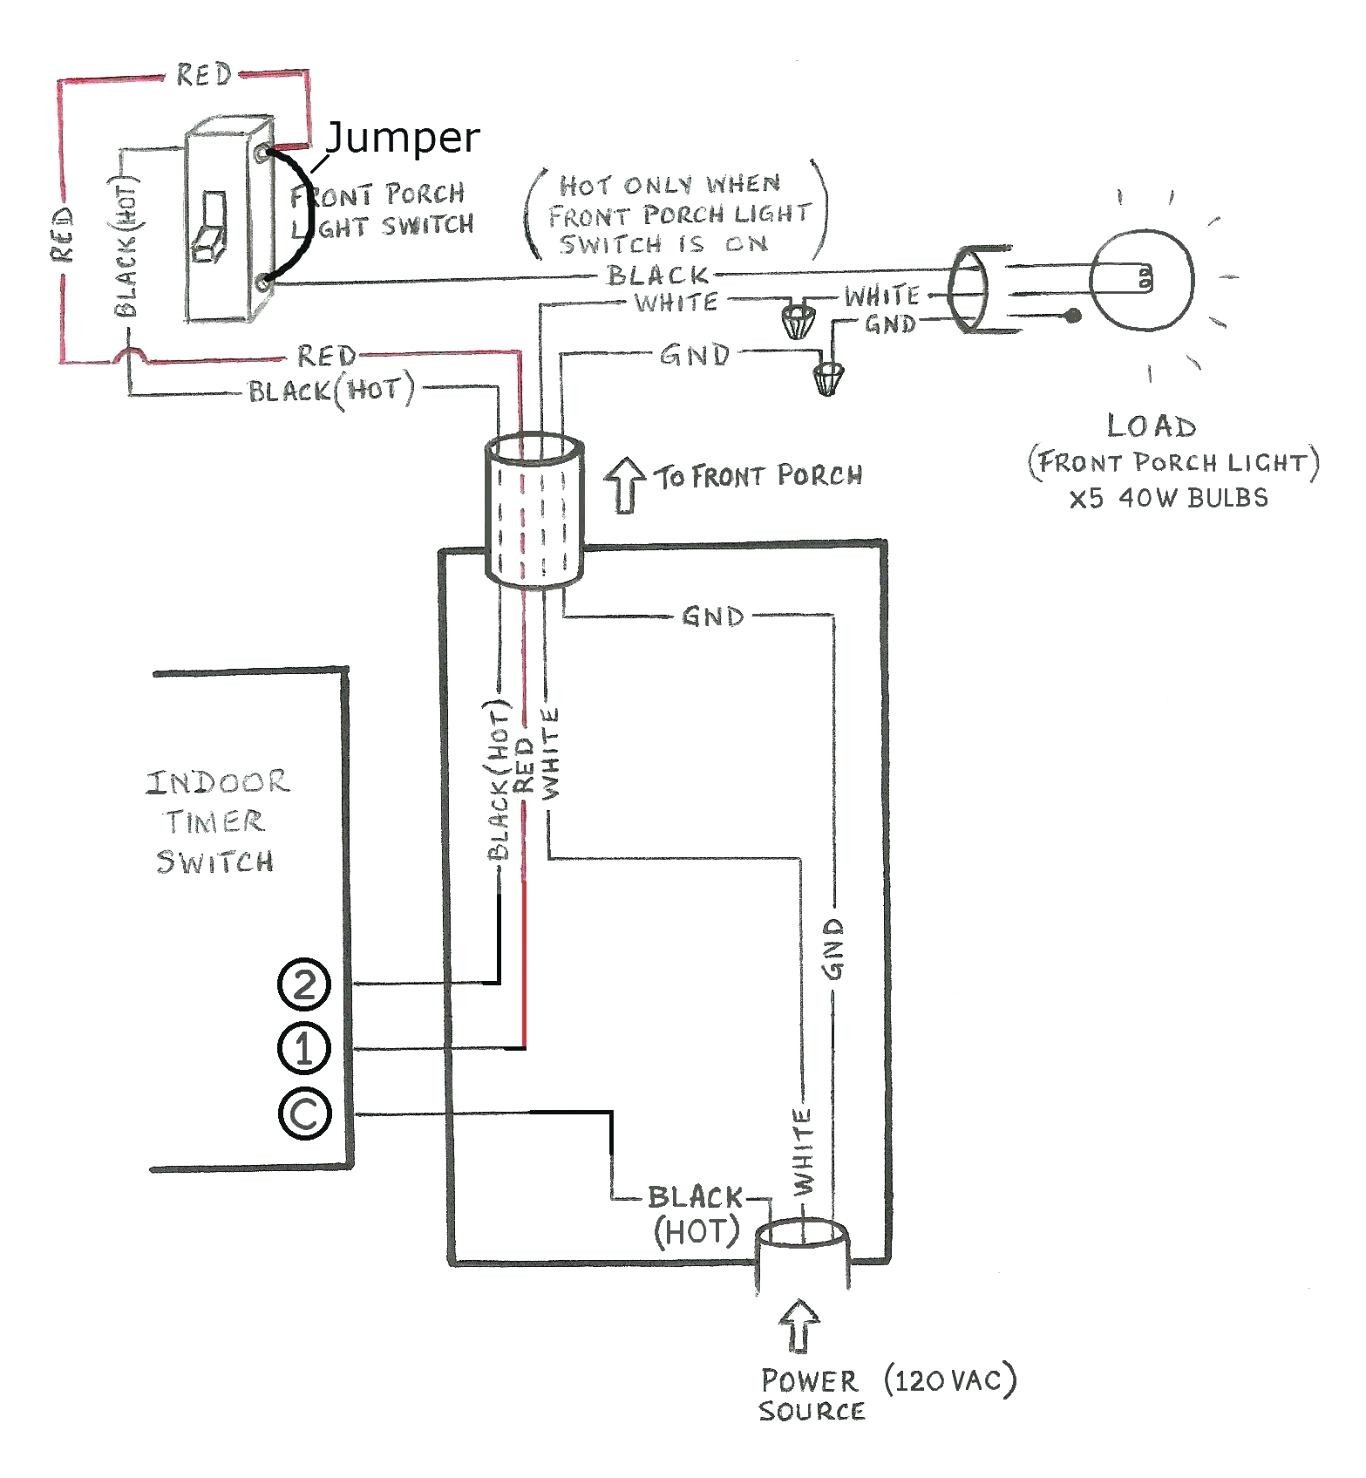 Wiring Diagram for Float Switch Fresh Dual Float Switch Wiring Diagram Simple the Heart and Blood